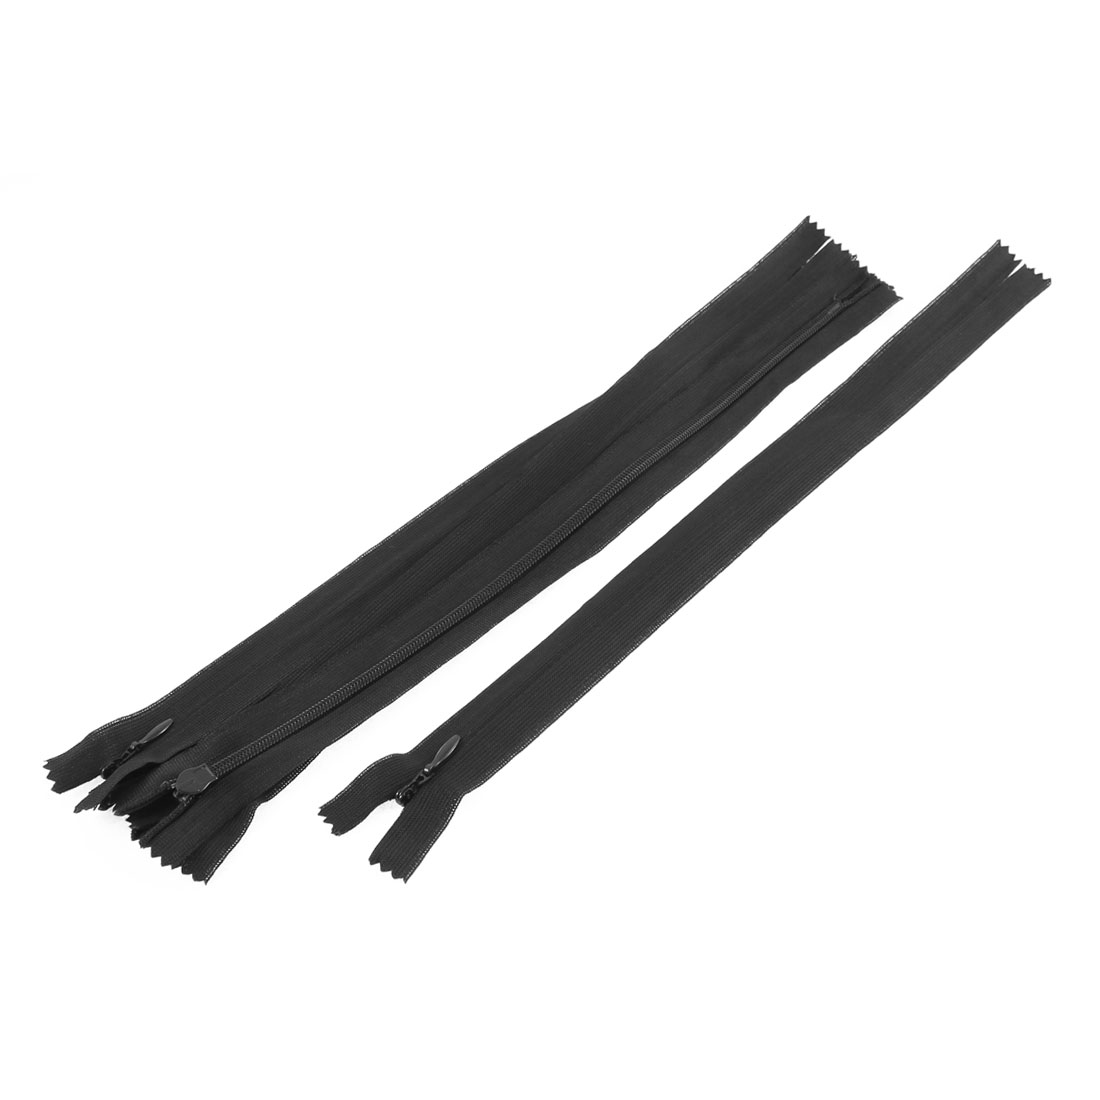 5 Pcs 12-inch Long Black Nylon Zippers Zips for Clothes